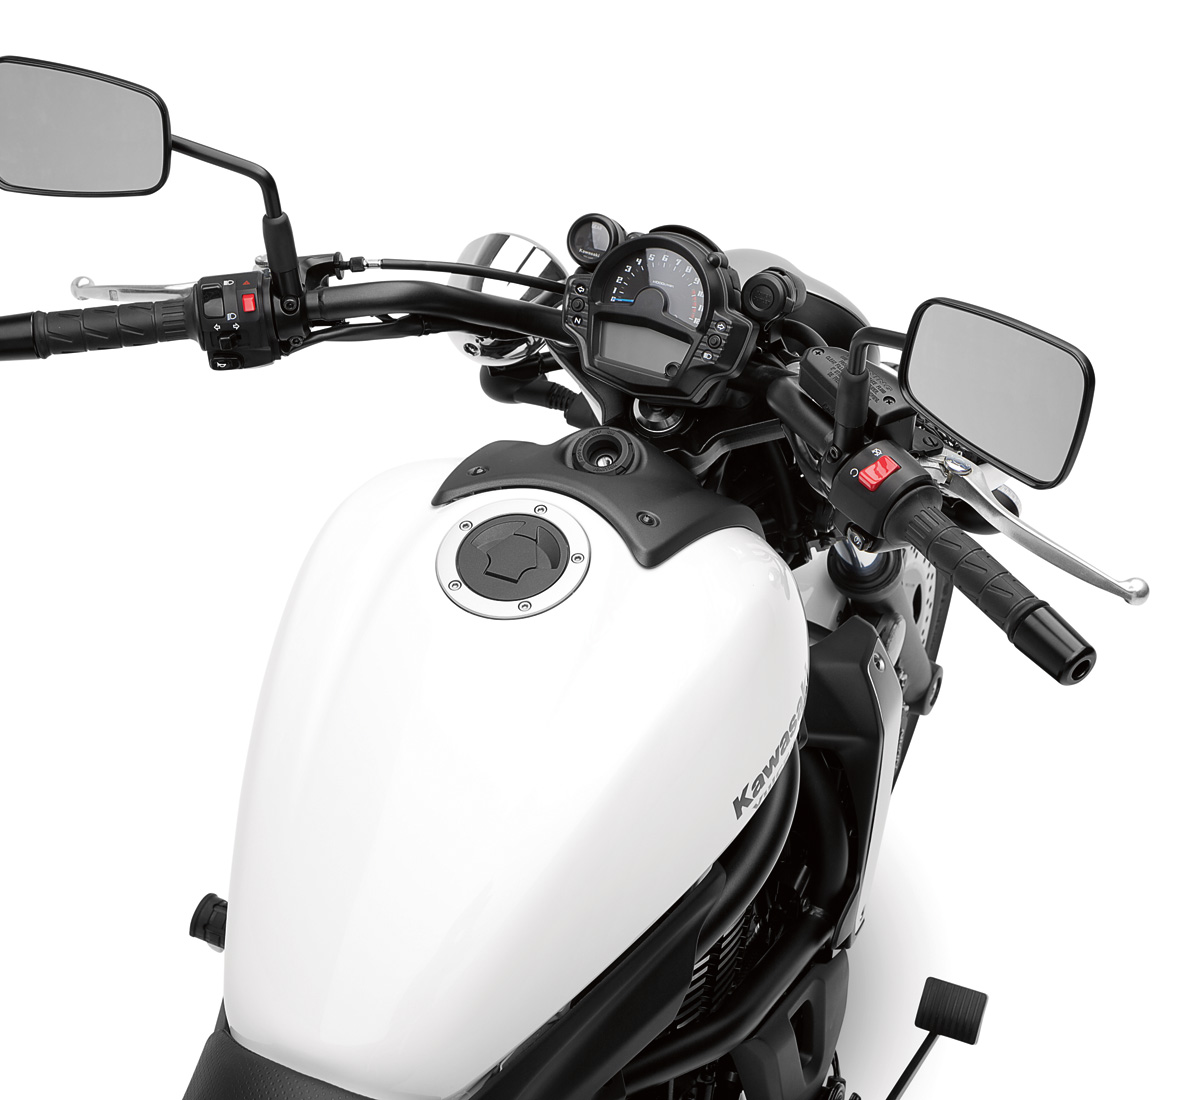 Motorcycle Gear Position Indicator